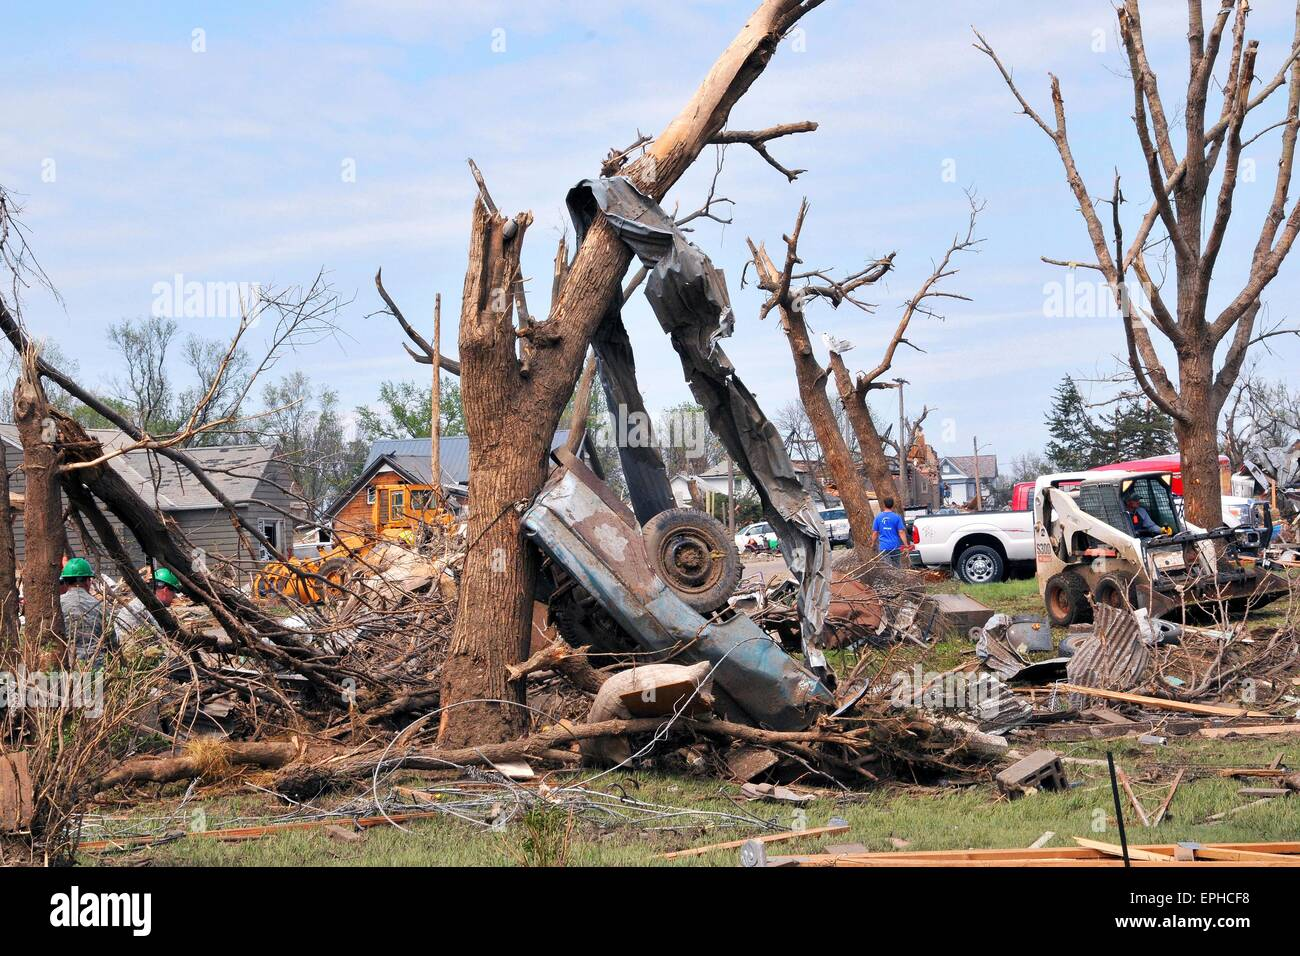 Delmont, South Dakota, USA. 17th May, 2015. Residents sift through the wreckage and debris following a EF-2 tornado - Stock Image